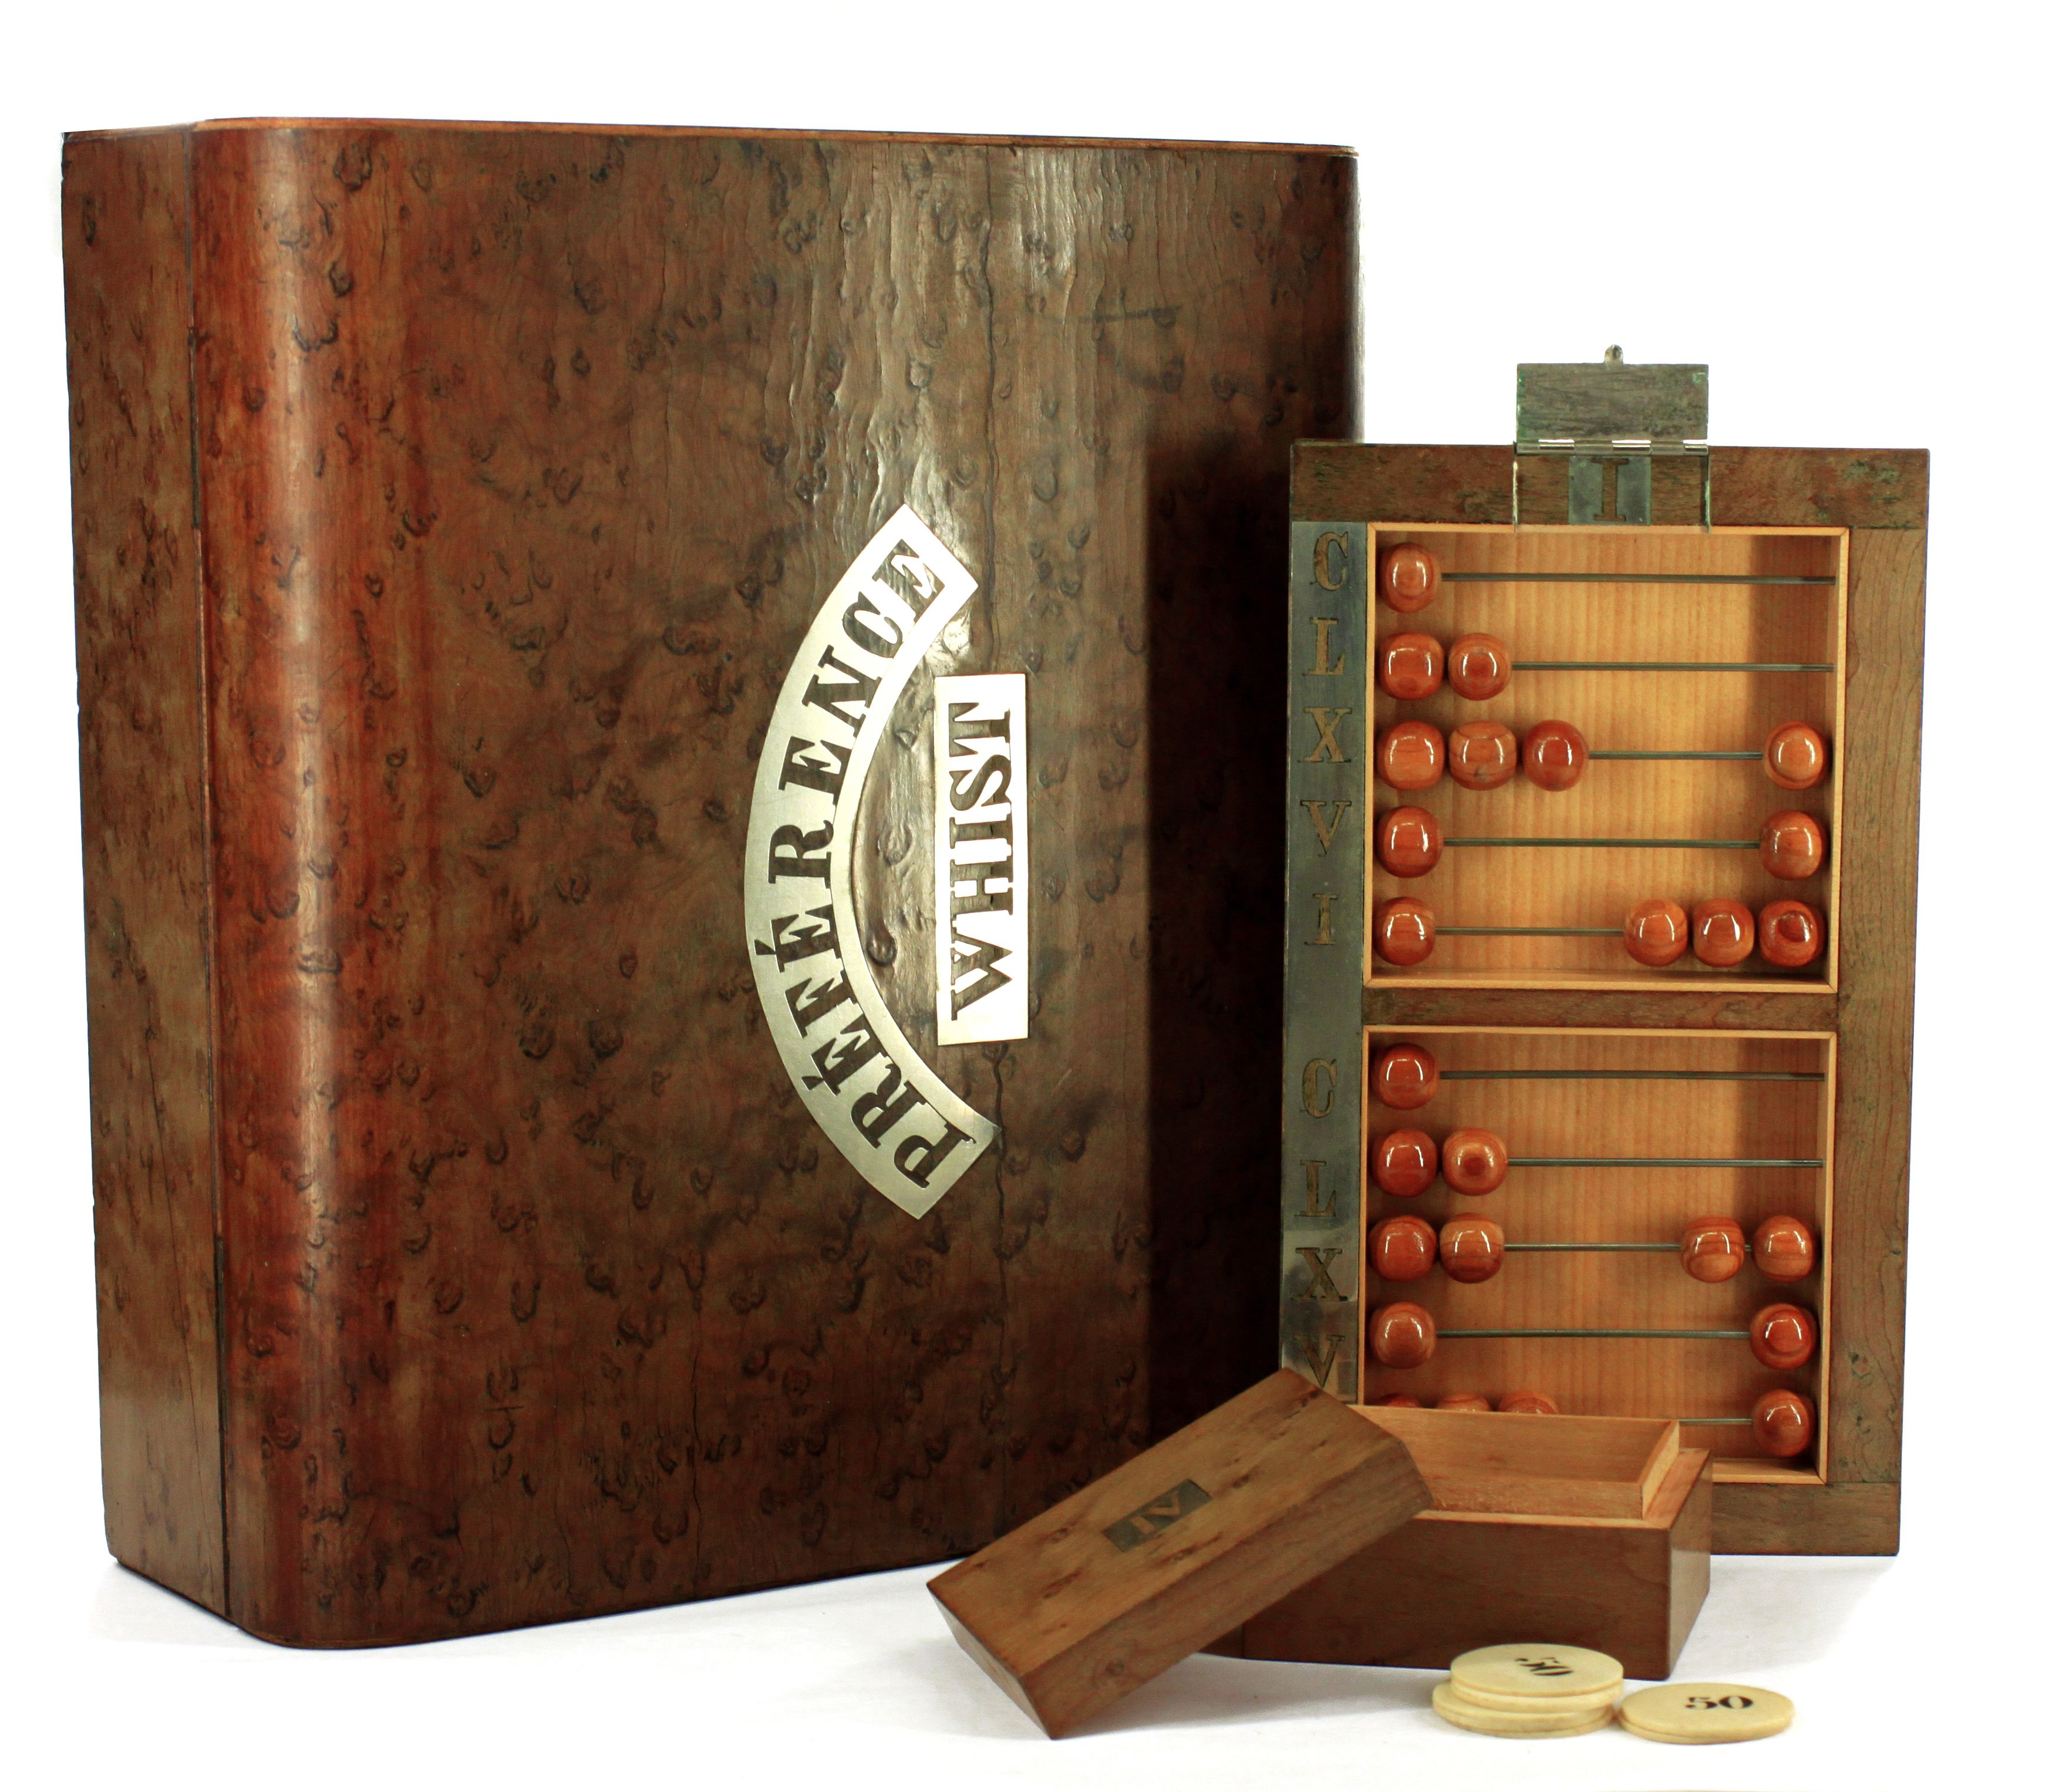 En card box for whist game as well as the game of